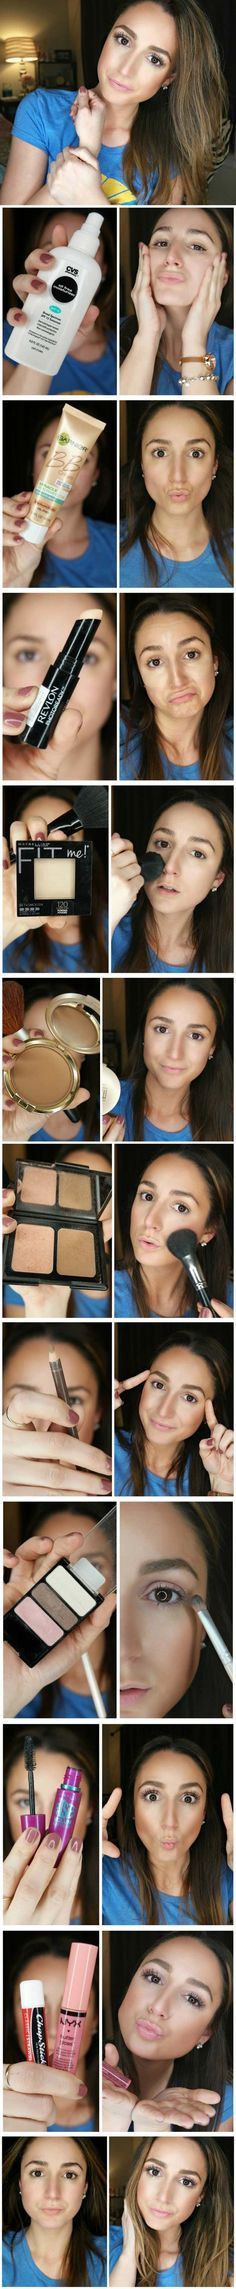 Best Makeup Tutorials for Teens -5 Minute Everyday Makeup Routine - Easy Makeup Ideas for Beginners - Step by Step Tutorials for Foundation, Eye Shadow, Lipstick, Cheeks, Contour, Eyebrows and Eyes - Awesome Makeup Hacks and Tips for Simple DIY Beauty - Day and Evening Looks http://diyprojectsforteens.com/makeup-tutorials-teens